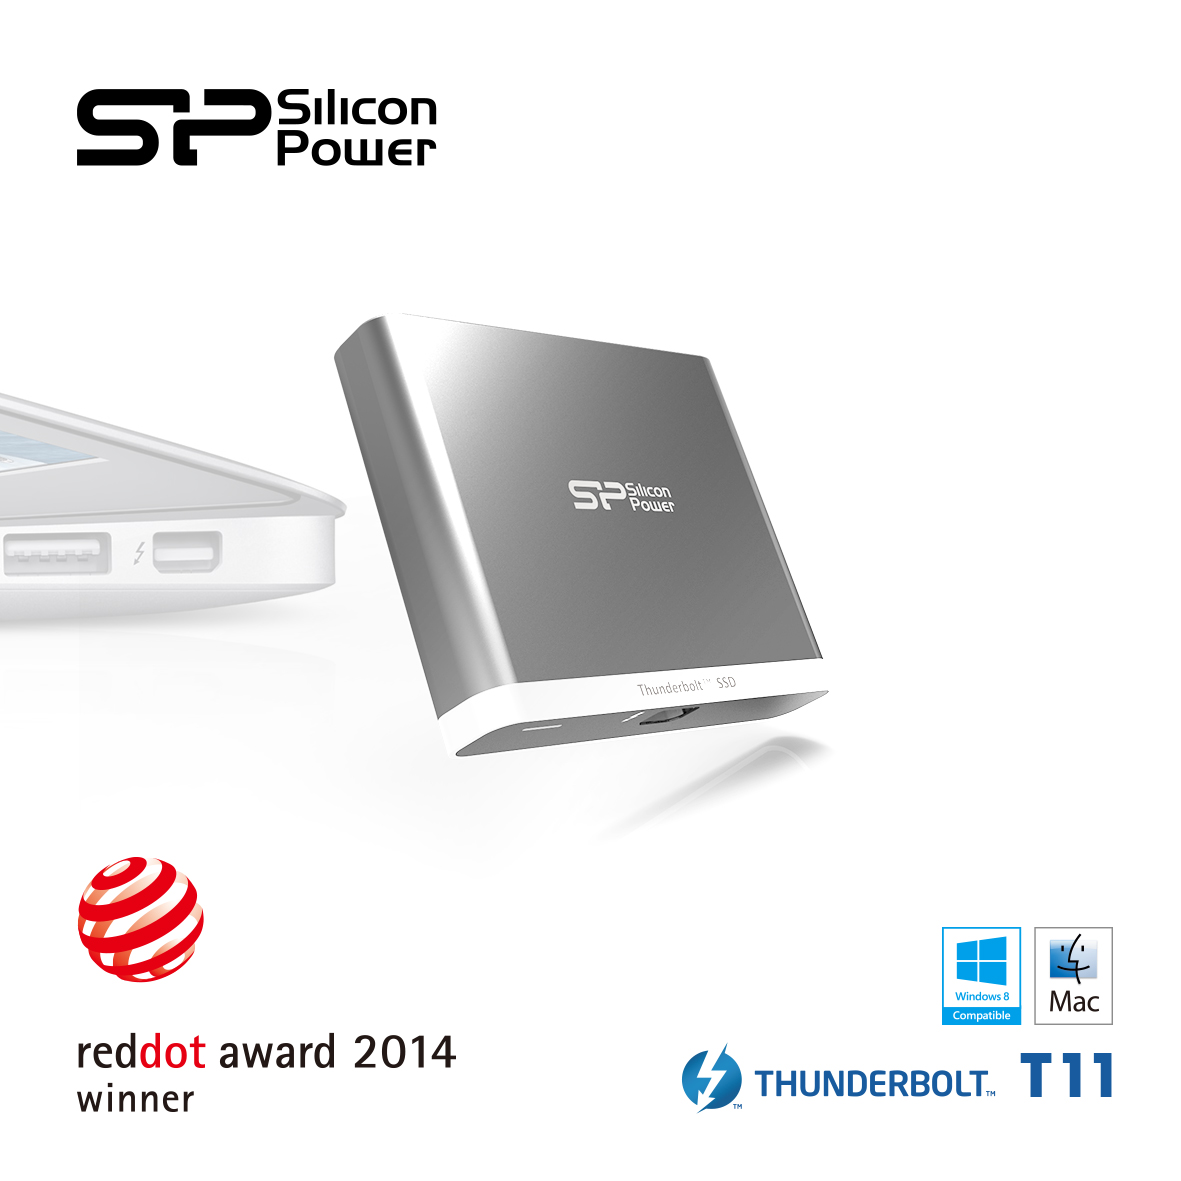 SP/ Silicon Power wins the award from Red Dot Design Award 2014 SiliconPower, SSD, USB 3.0, USB Flash Drive 1